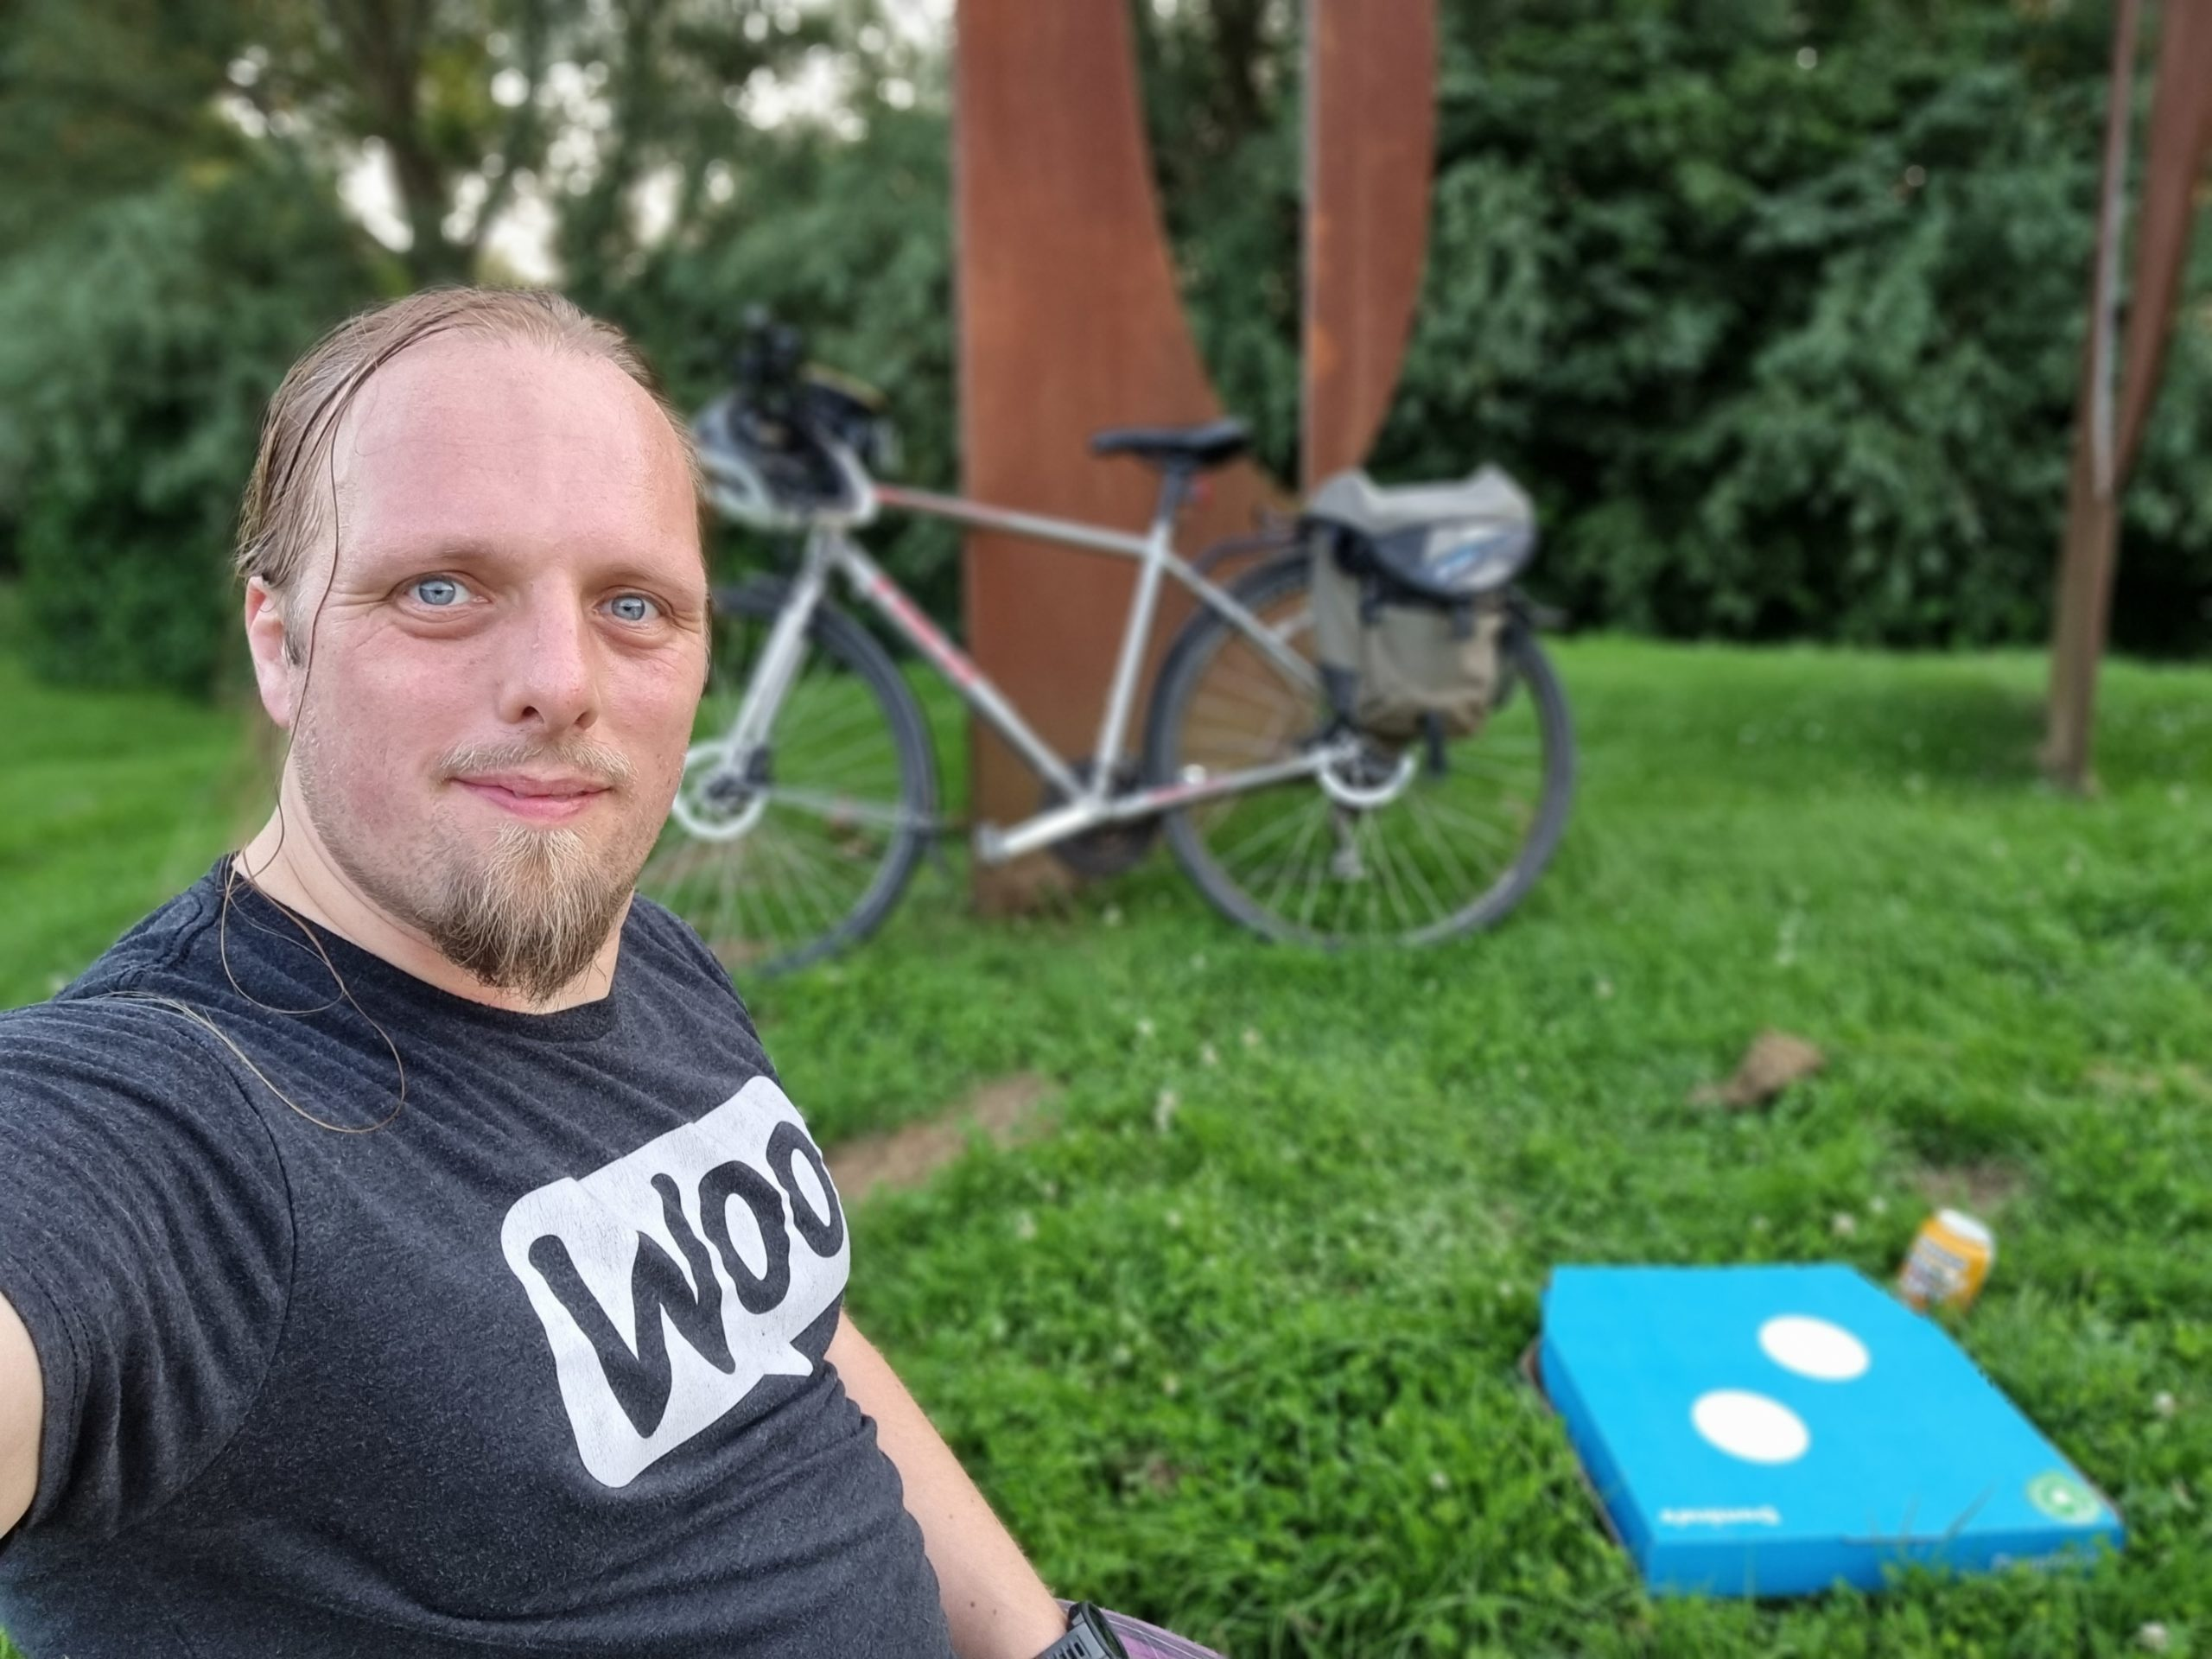 Dan sits on the grass with a Dominos pizza box and a can of beer. His bike is in the background, leaning on a stylistically-corroded piece of metal artwork.